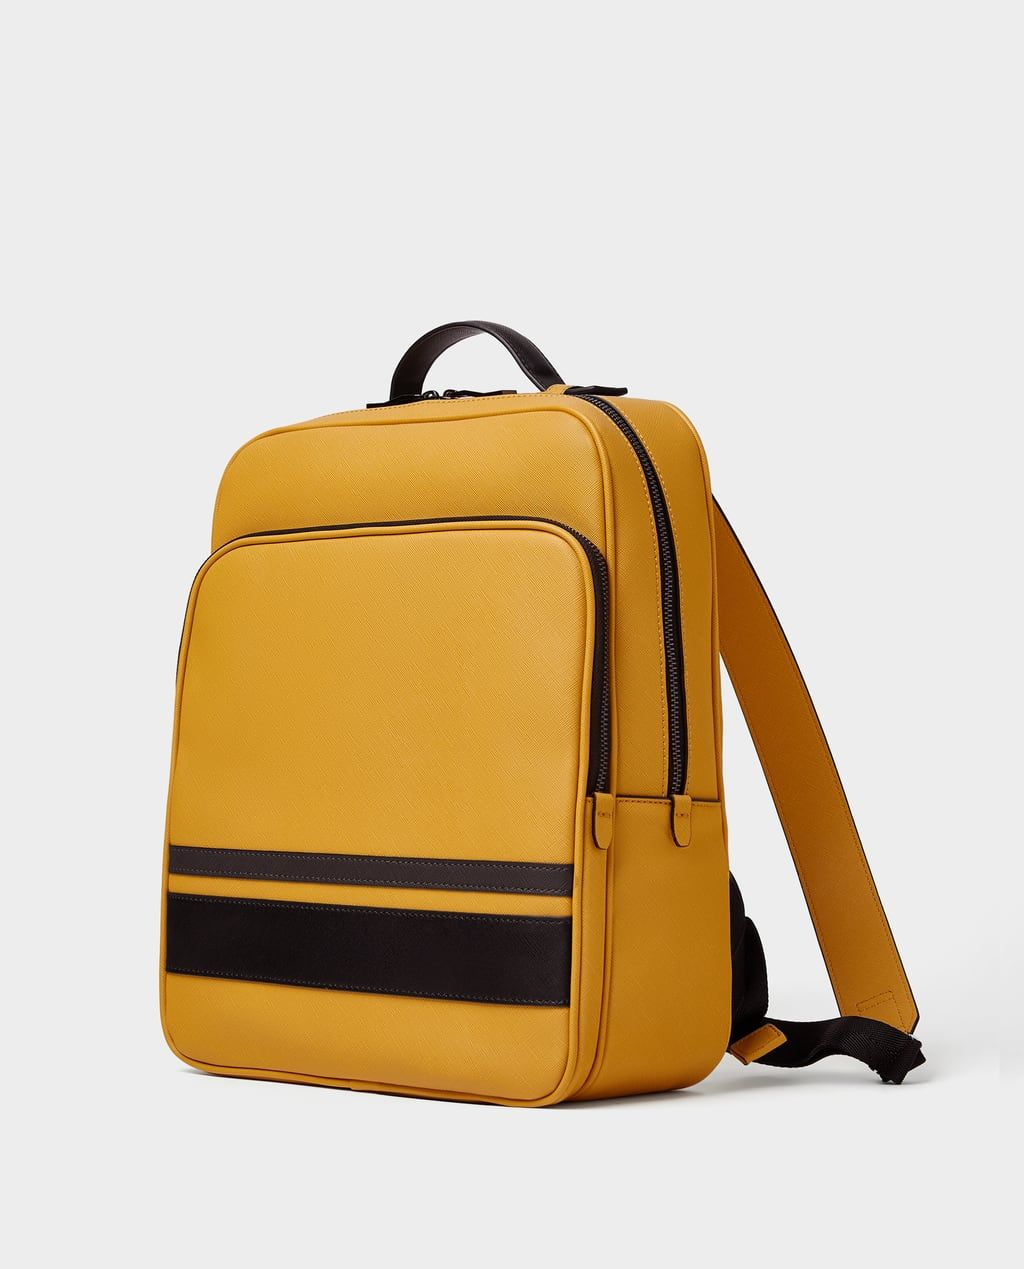 fb253825e59 Image 1 of SMART YELLOW BACKPACK from Zara | Fashion in 2019